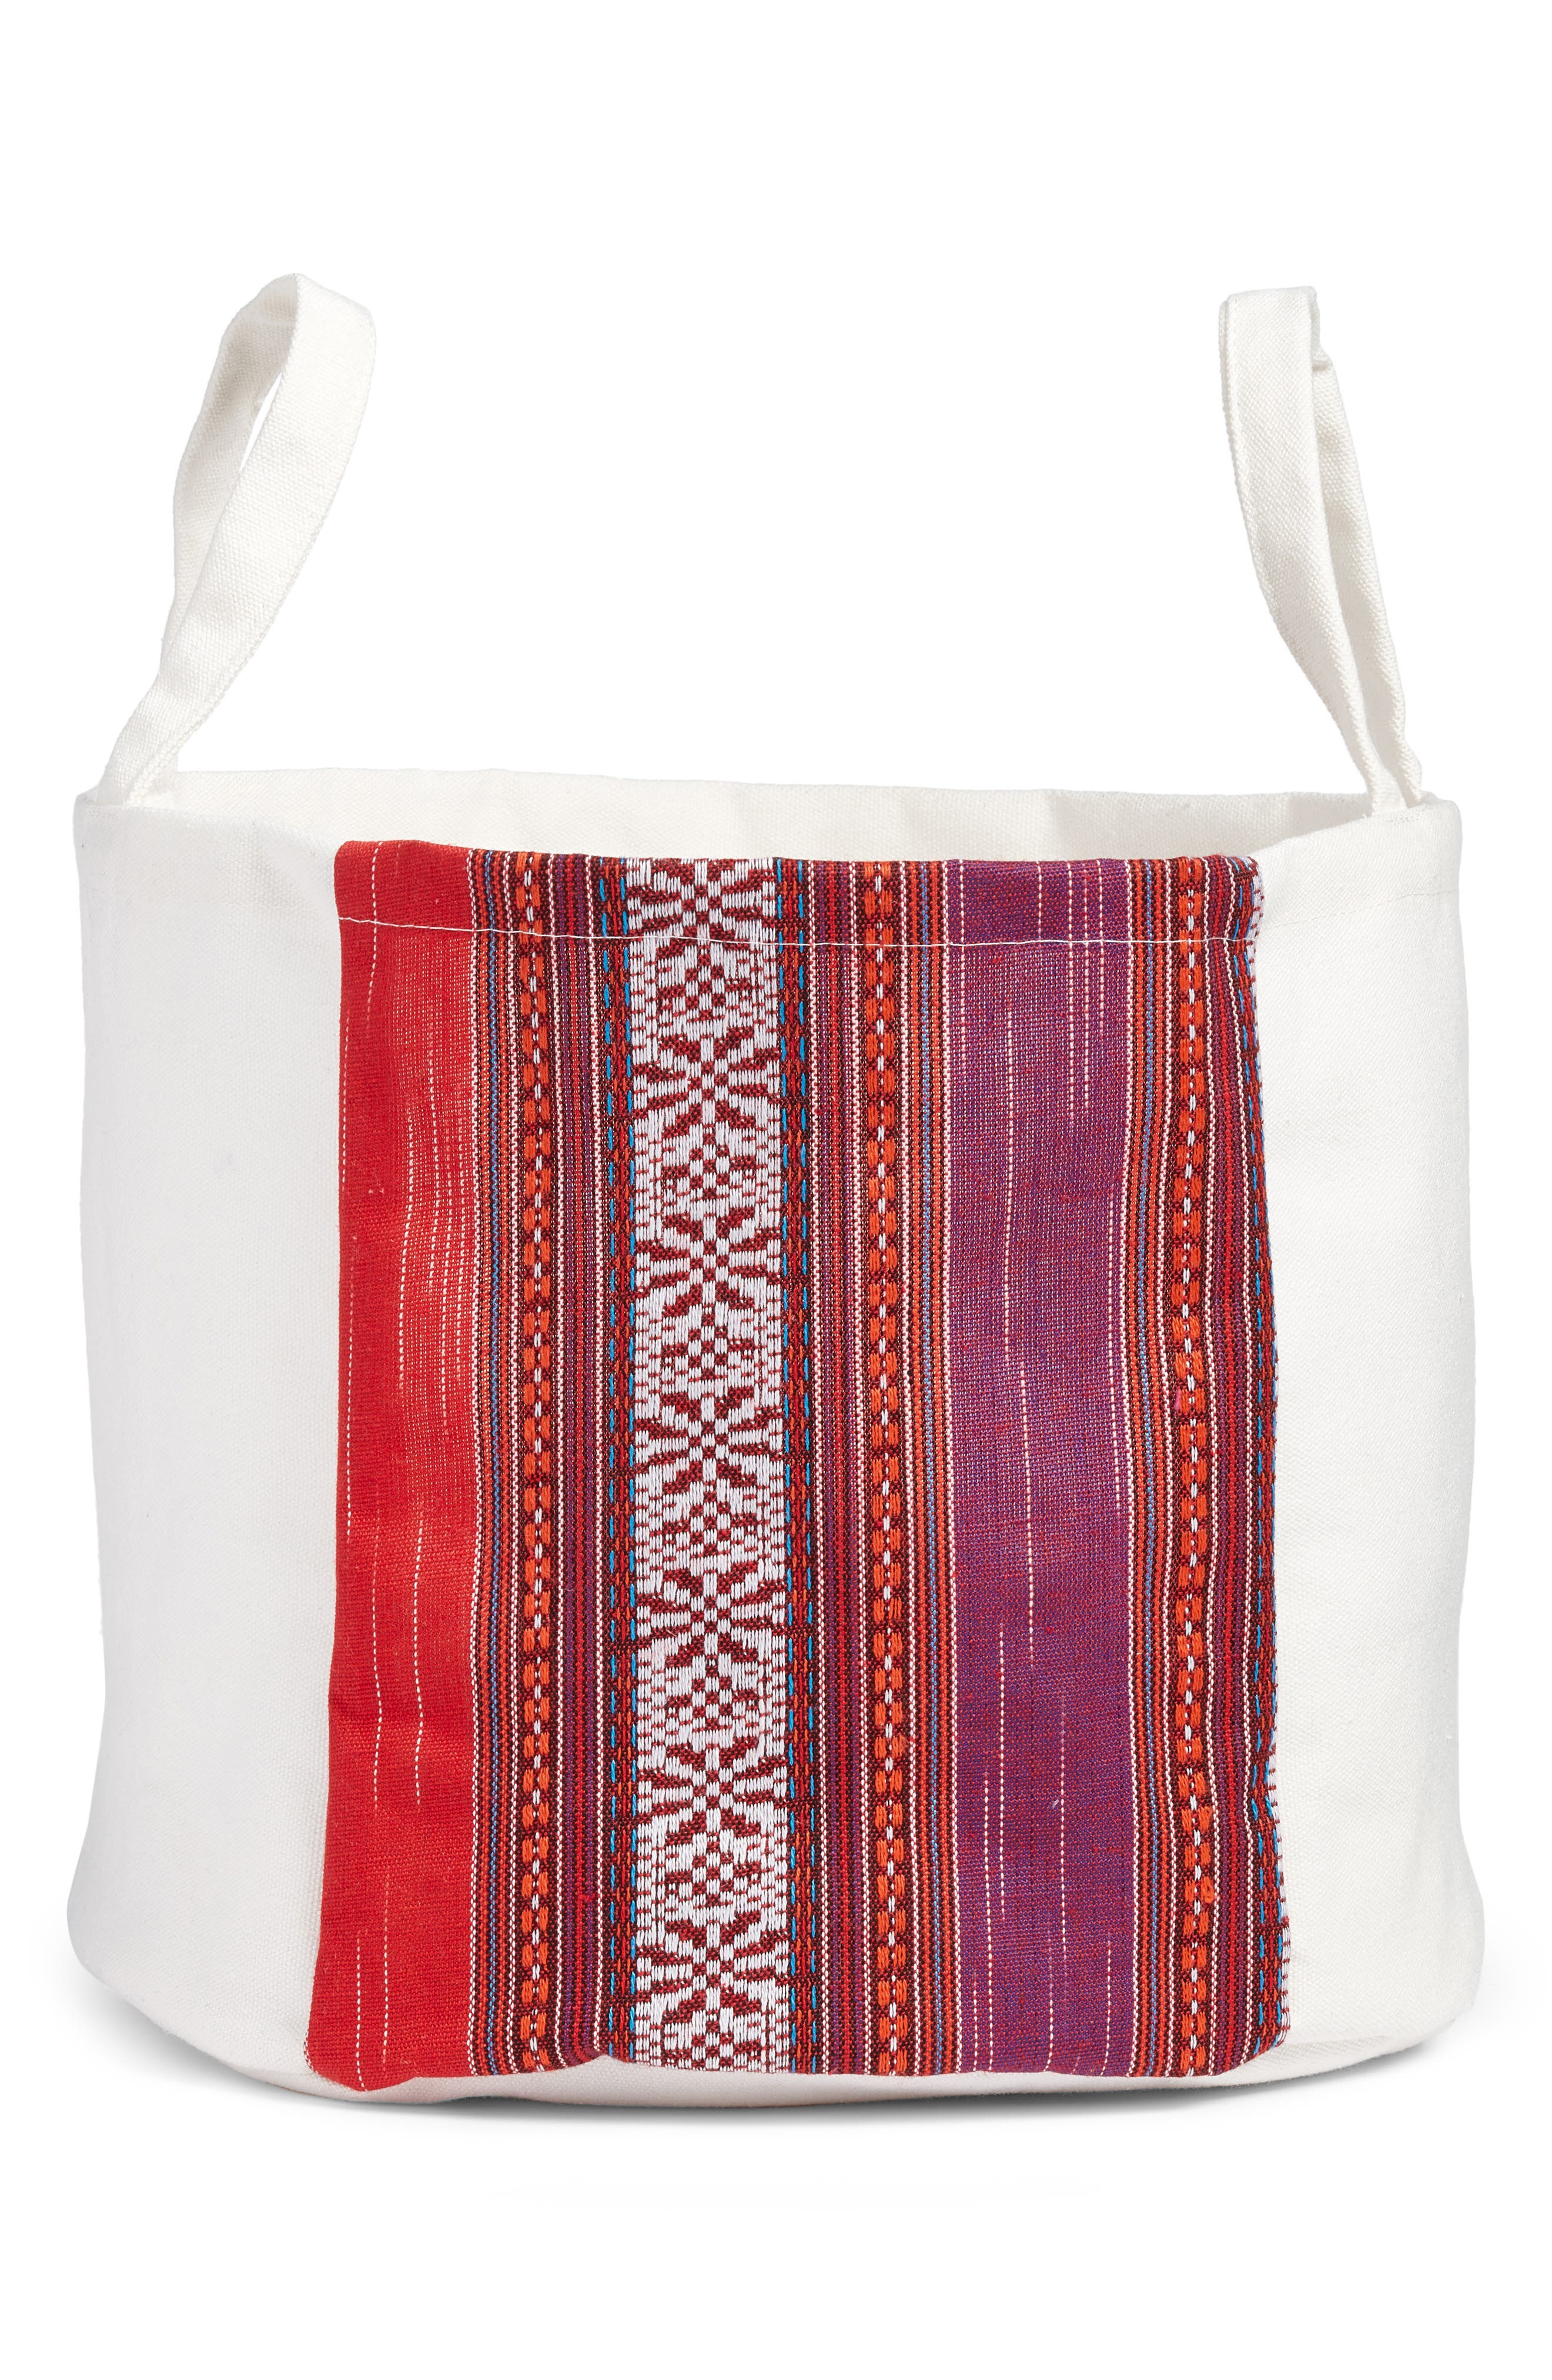 Levex Boho Canvas Basket,                             Main thumbnail 1, color,                             Multi